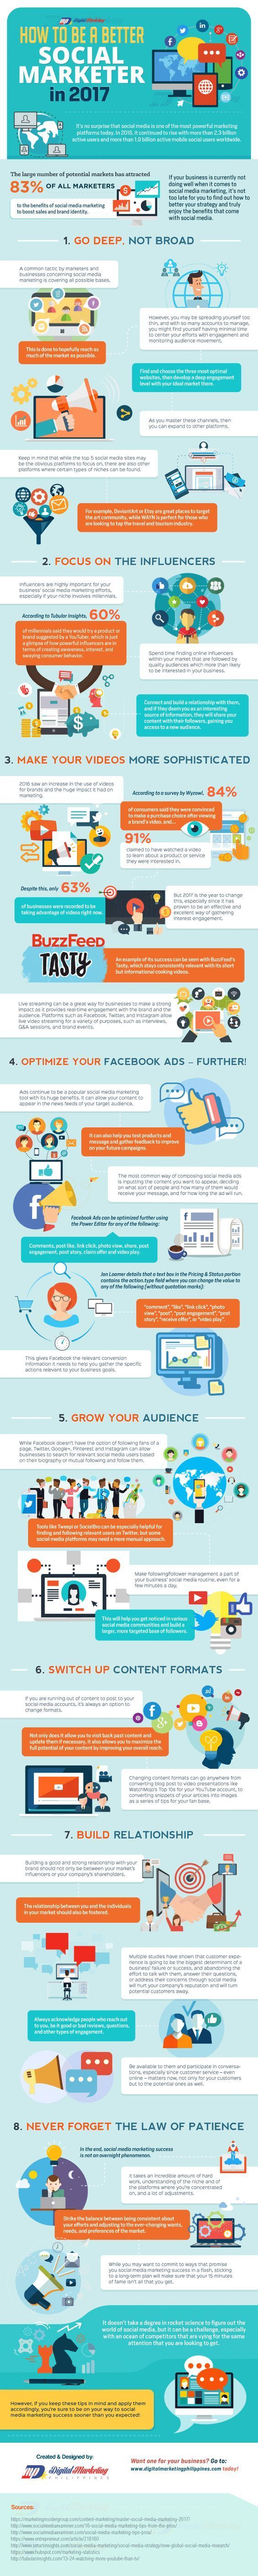 How to be a better #socialmedia marketer in 2017 [[INFOGRAPHIC]]